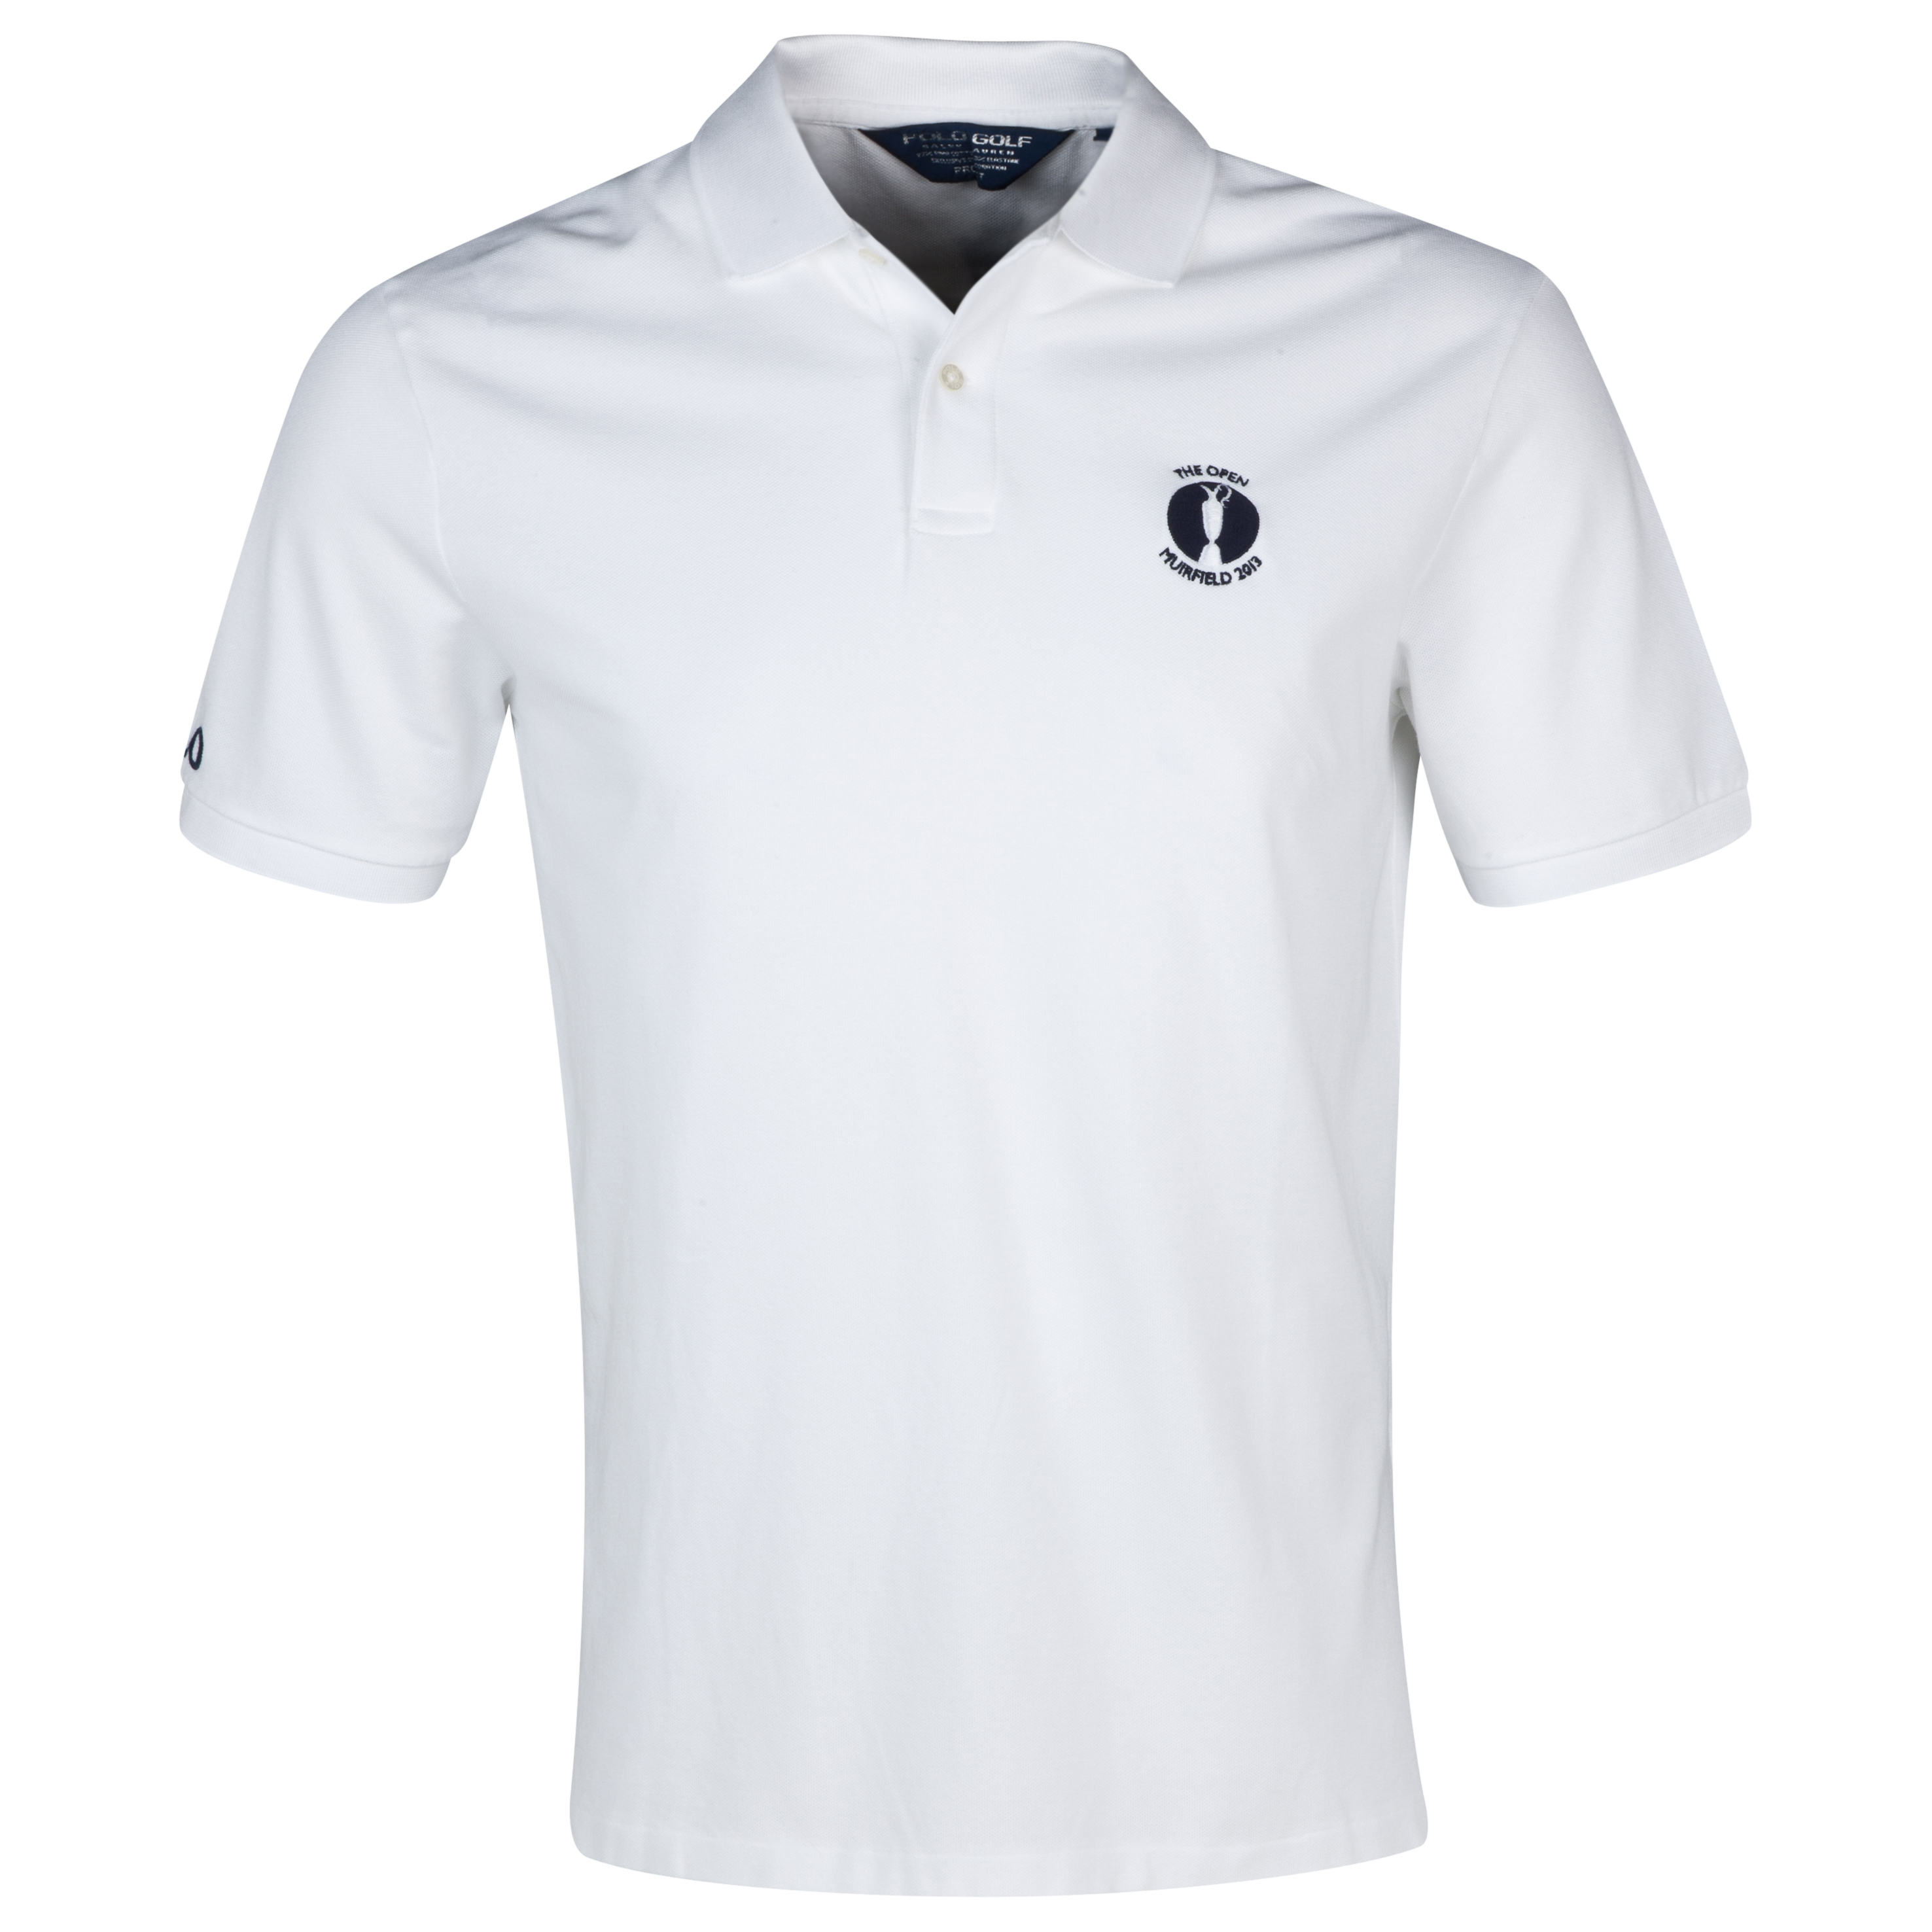 Open Golf Championship 2013 Muirfield Polo Ralph Lauren Solid Polo White